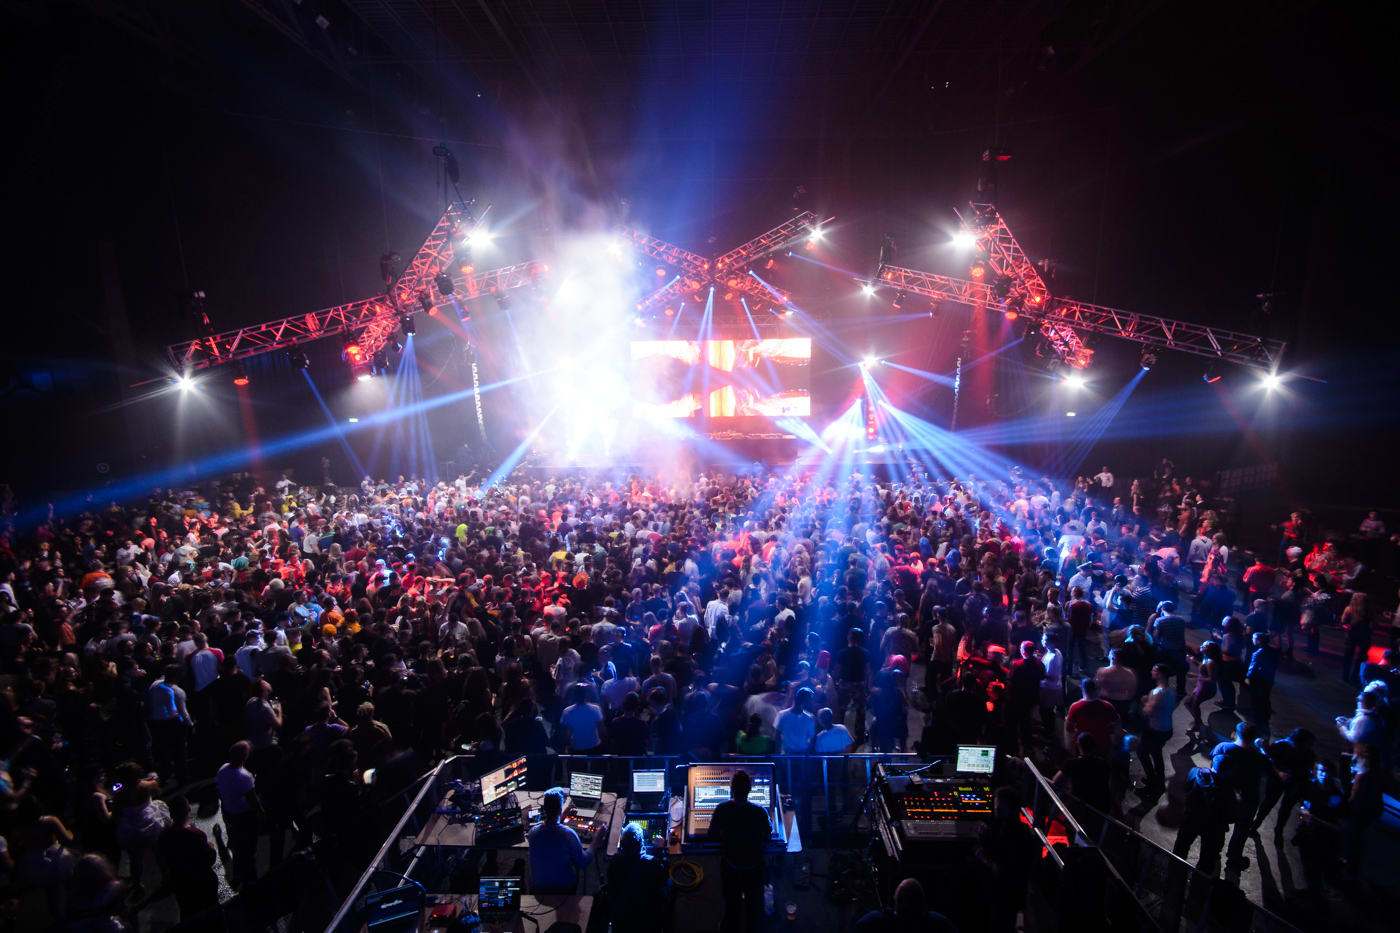 winterparty-at-3arena-dublin-30-10-2016-by-sean-smyth-41-of-53